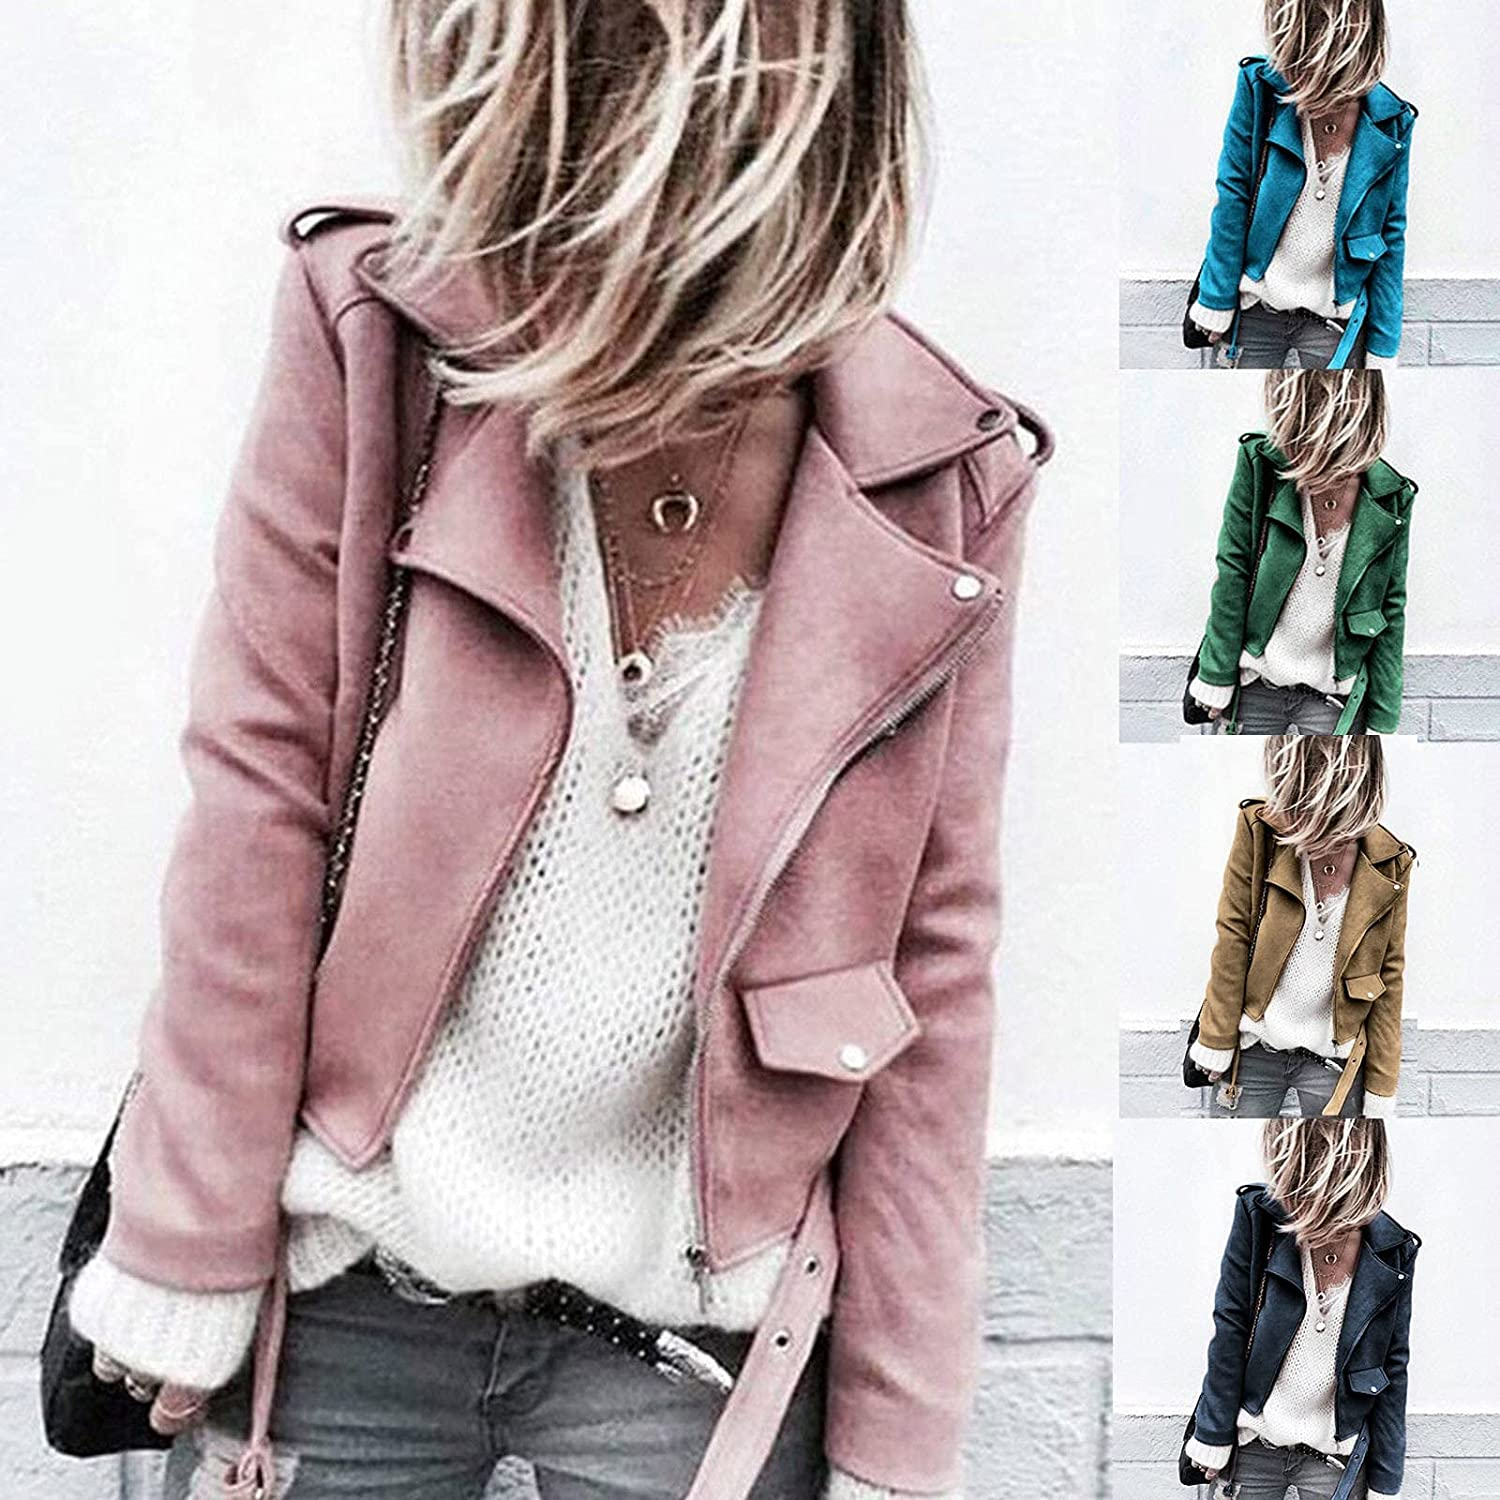 FIRERO Women's Faux Suede Casual Autumn Slim Zippers Coat Solid Color Cool Motorcycle Short Jacket